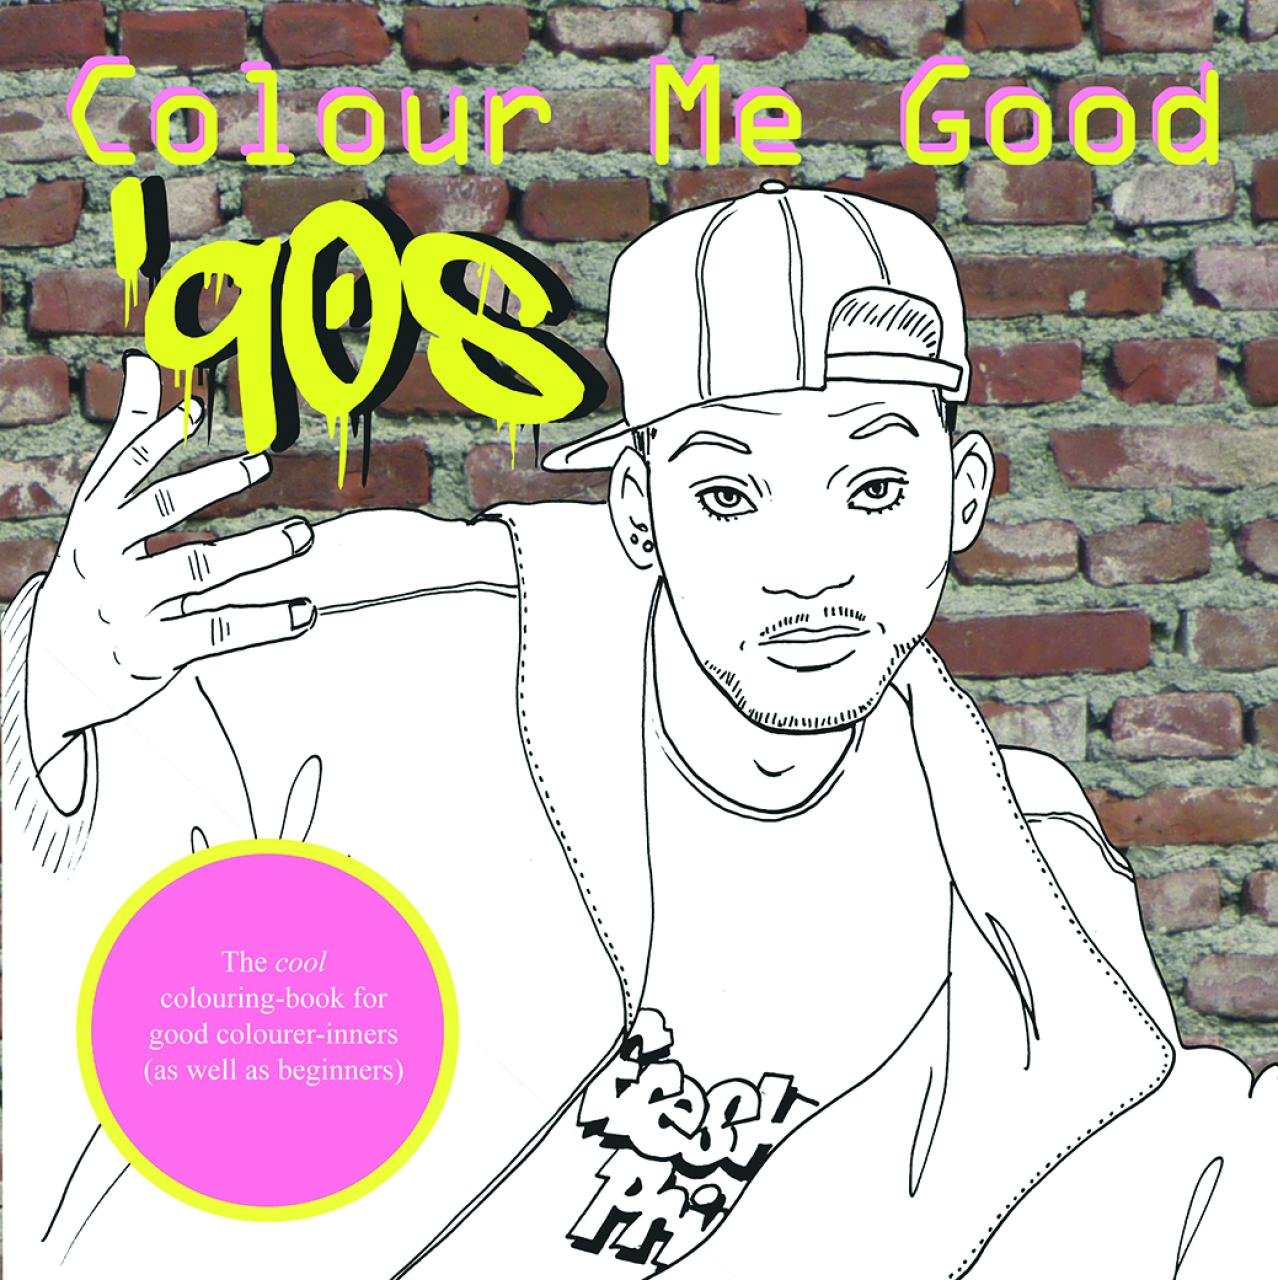 Colour Me Good 90s Mel Elliott 2015956720870 Amazon Com Books